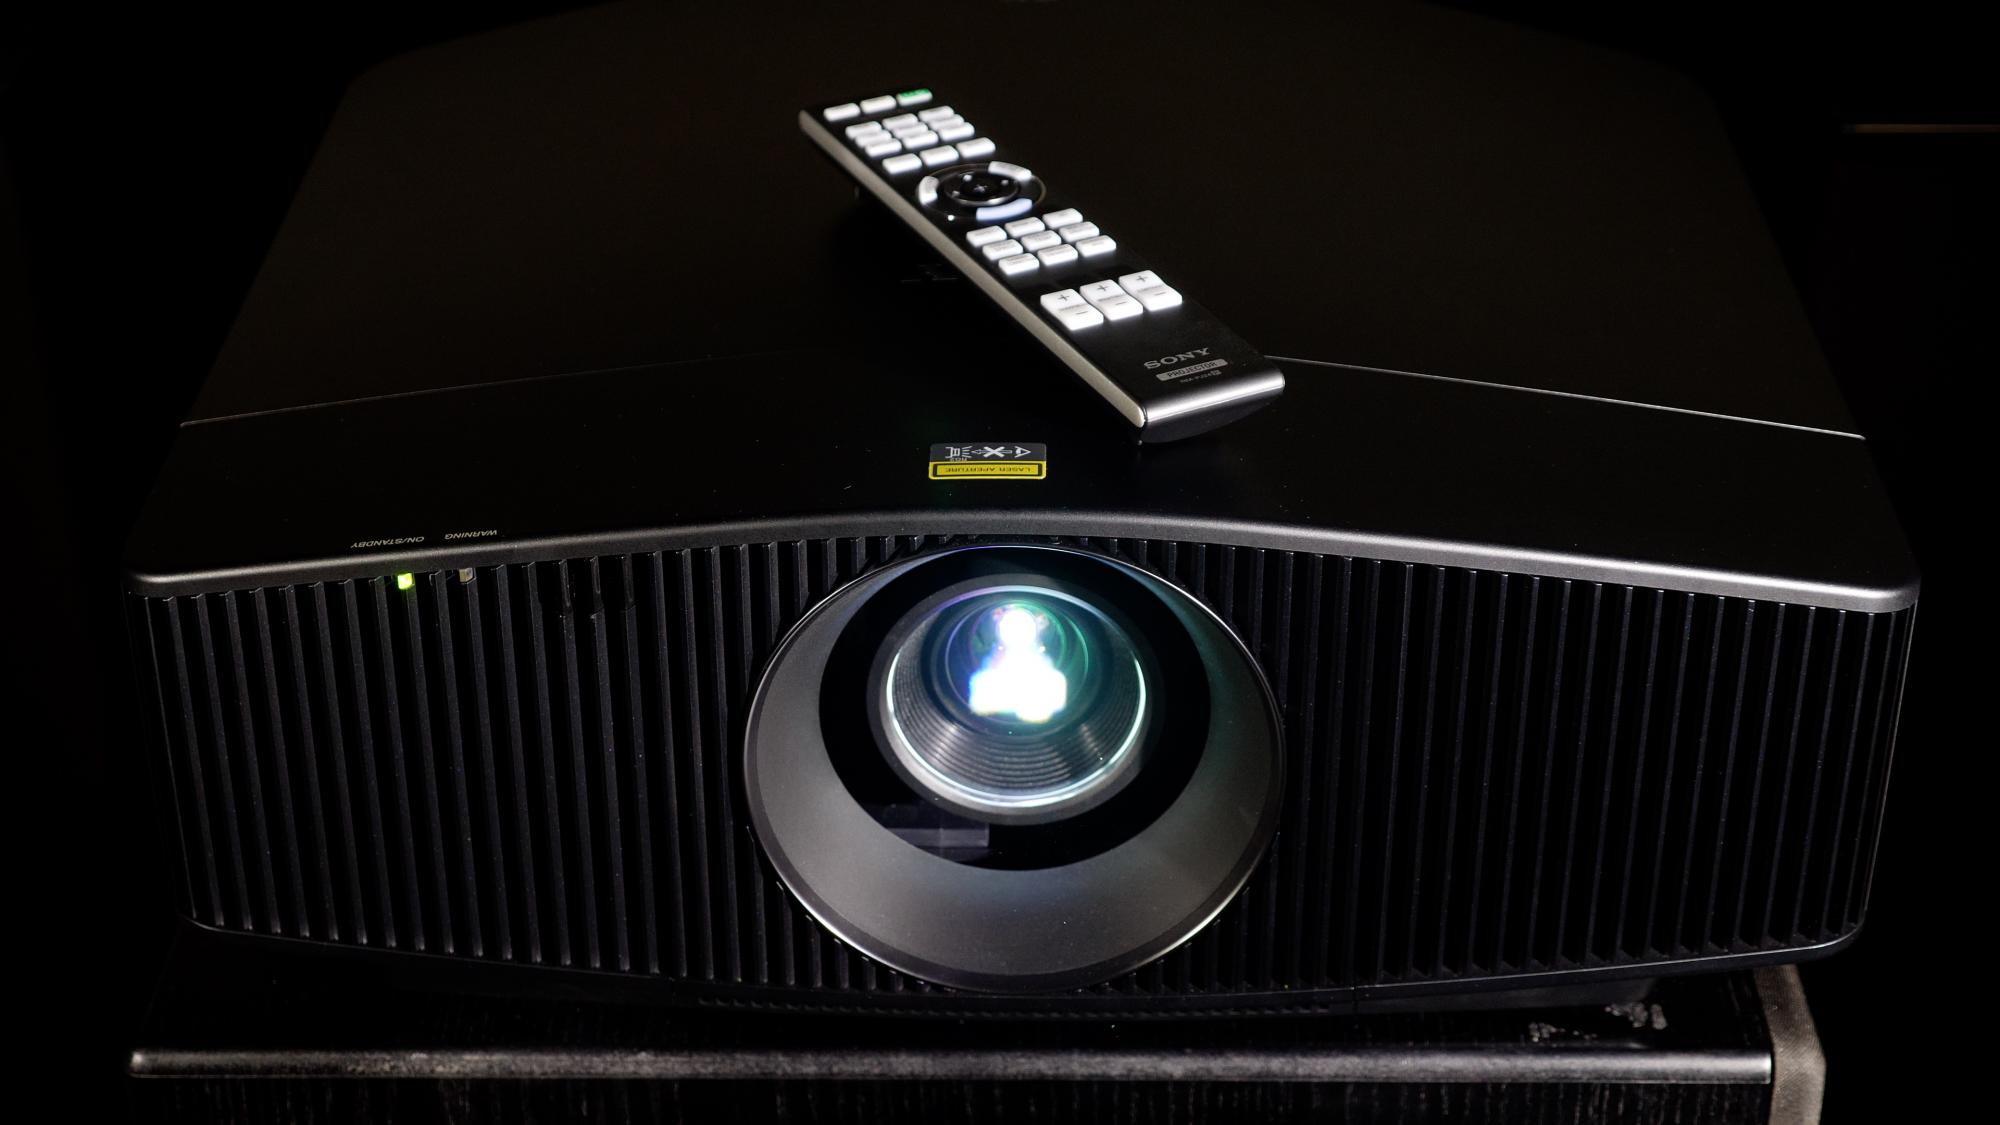 Sony VPL-VW760ES Projector Review